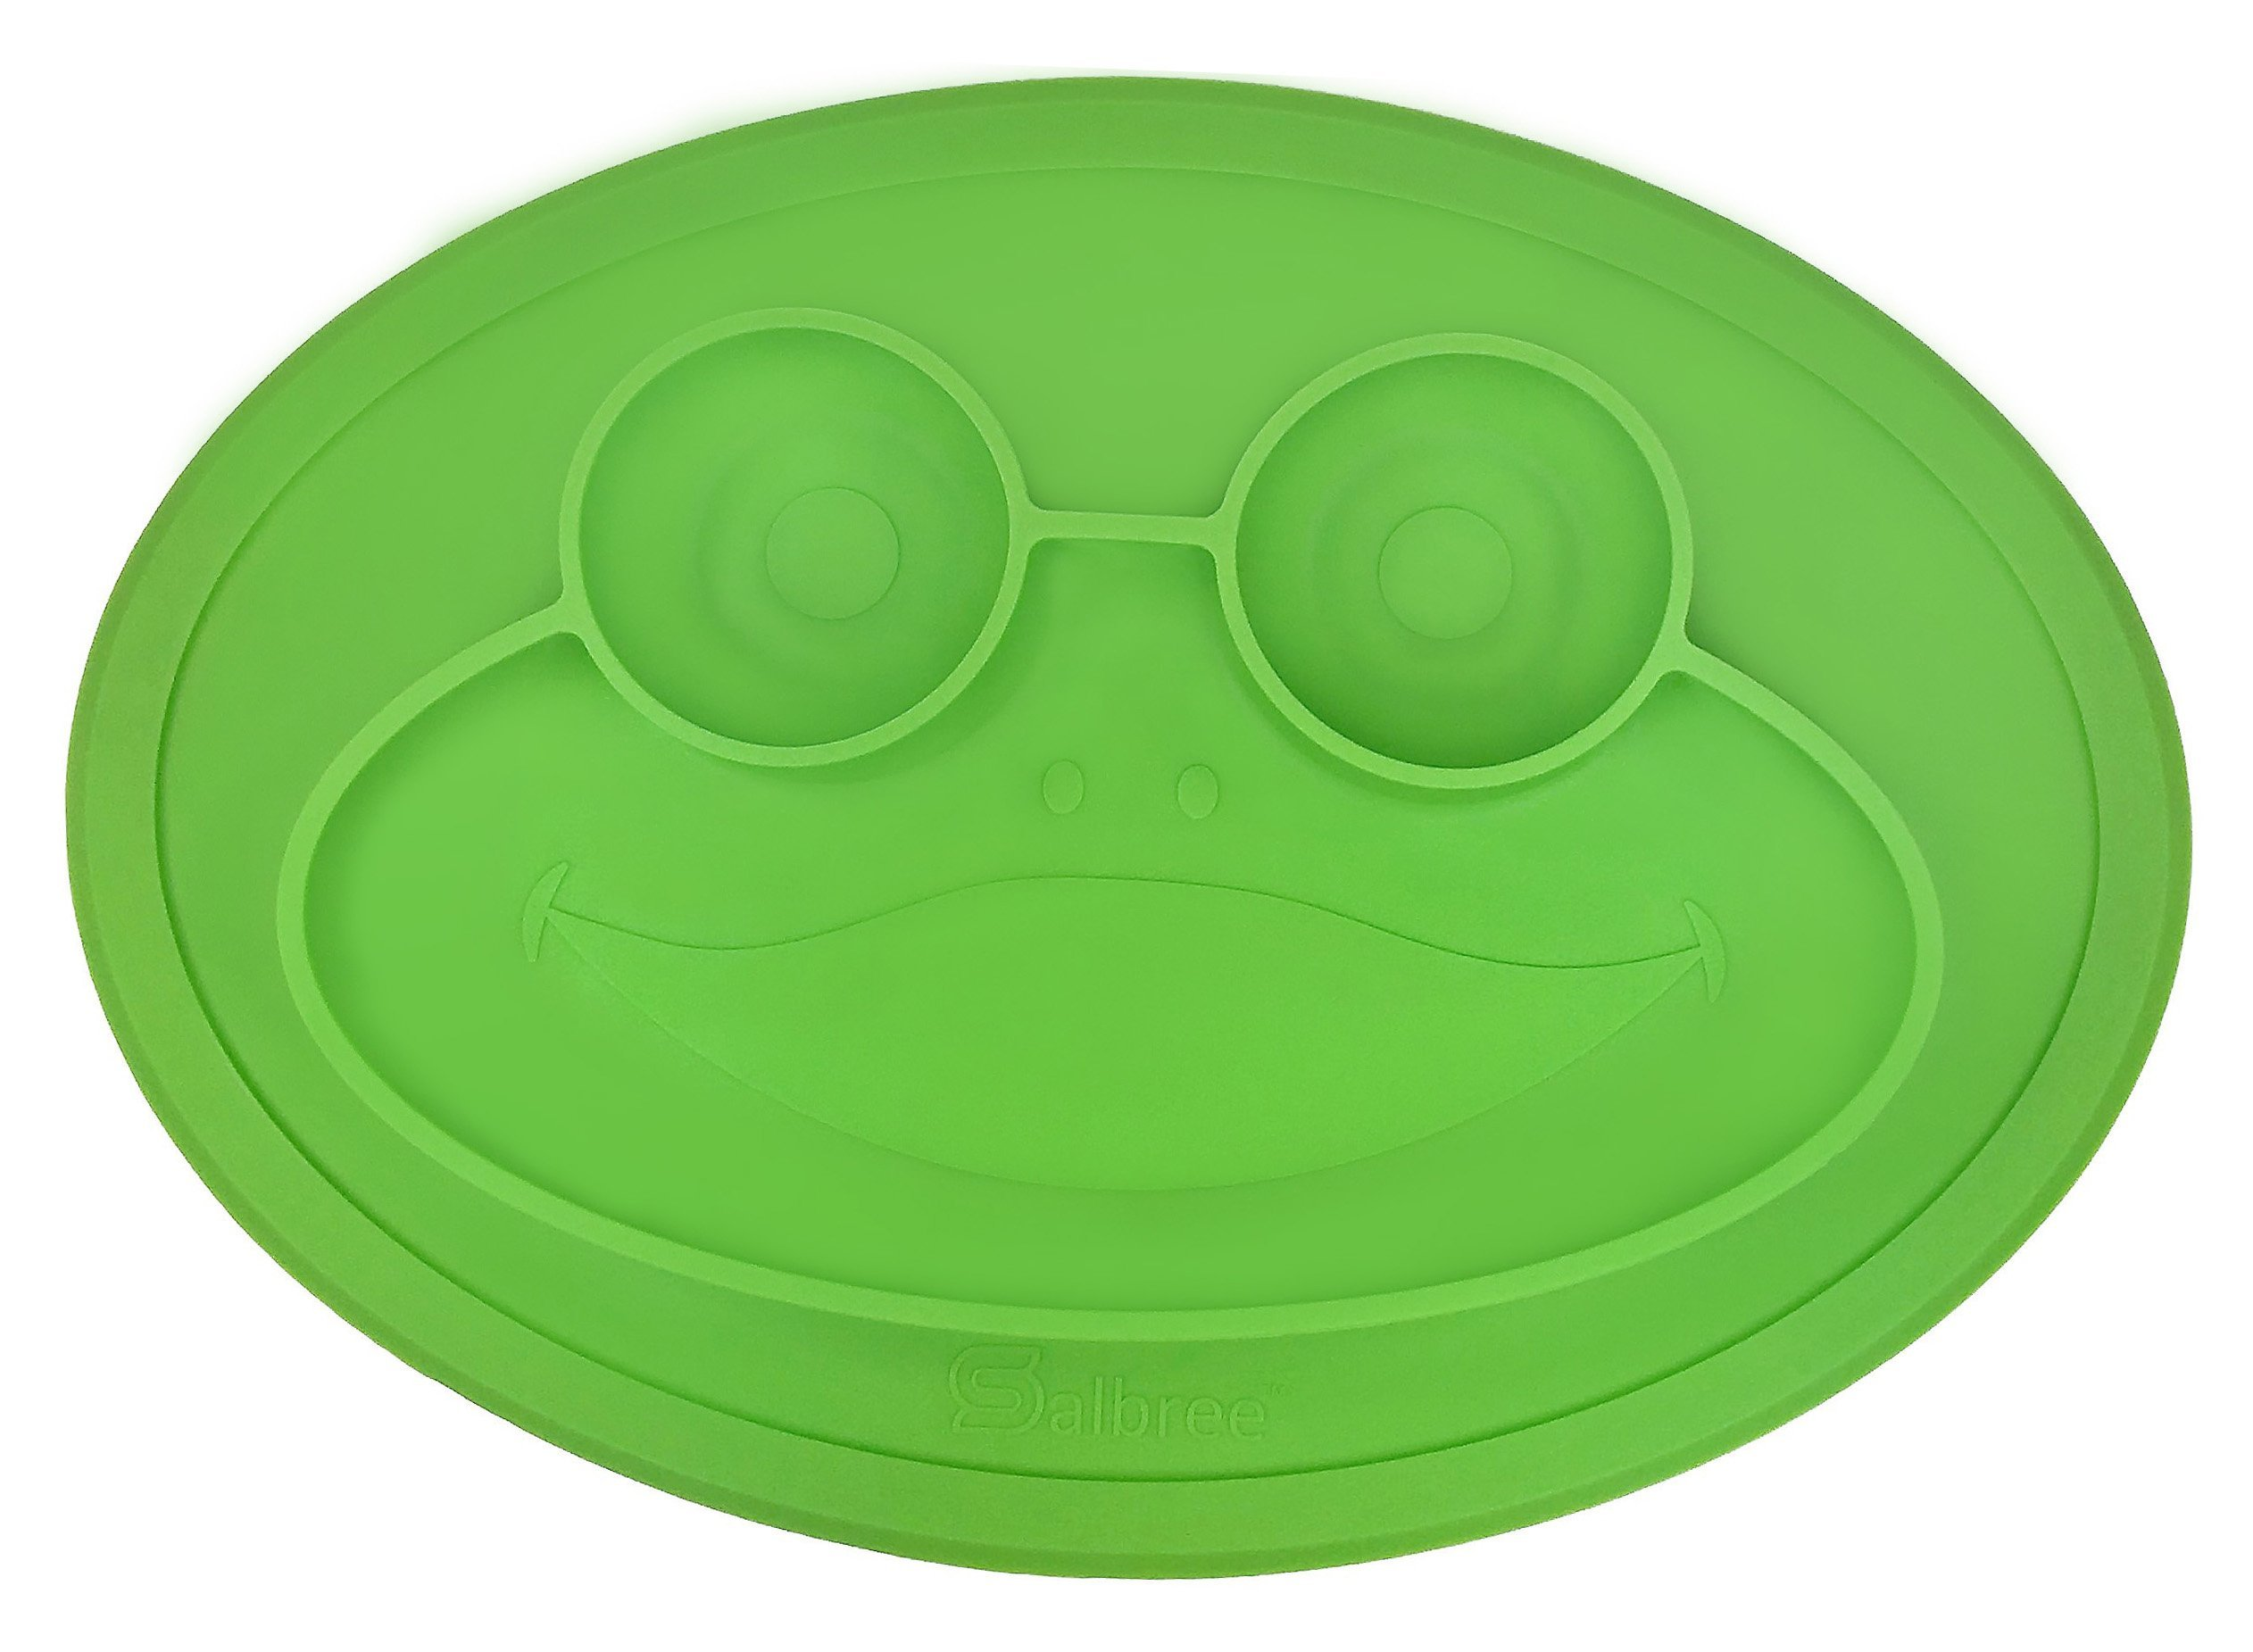 Round Silicone Frog Suction Placemat for Children, Kids, Toddlers, Babies Highchair Feeding Tray or Kitchen Dining Table with Built in Plate and Bowl, Comes with Travel Bag by Salbree, Green